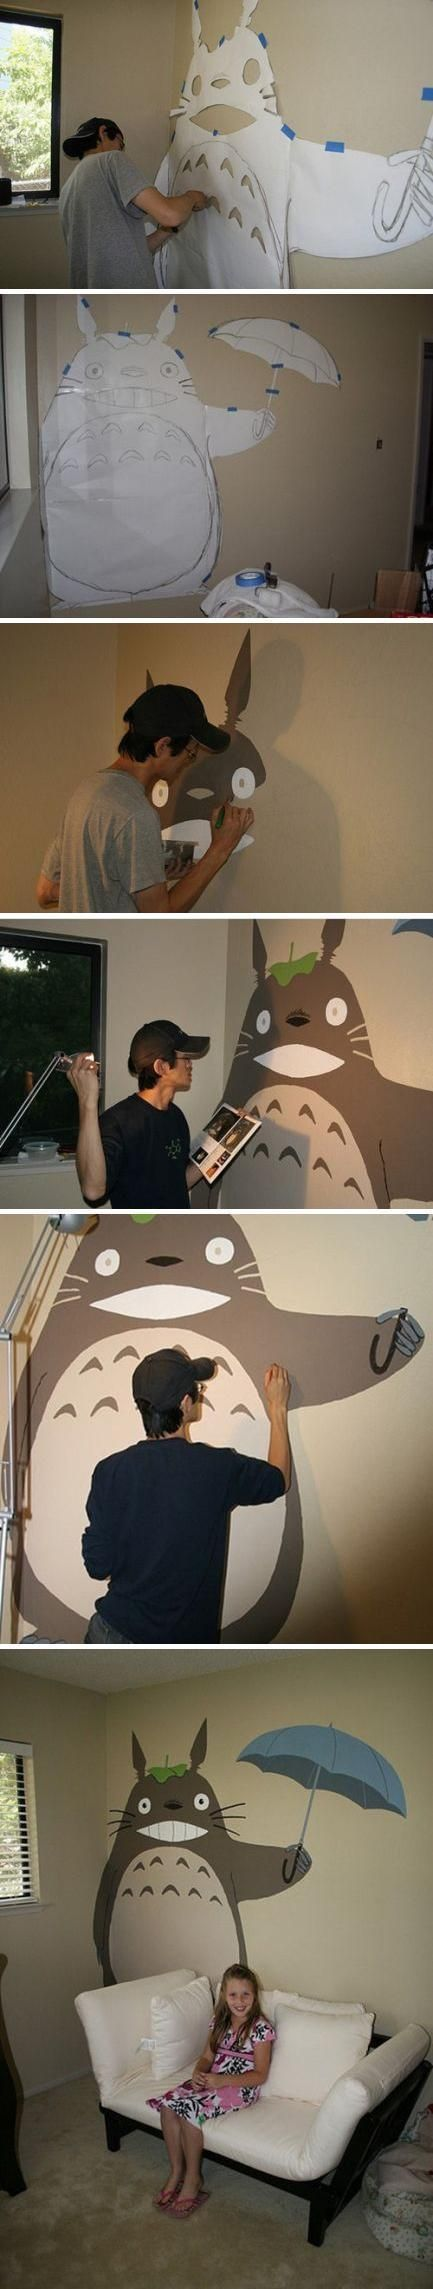 I'm only repinning because Totoro is a creature who follows children around when the they are about to die. He is an omen. The fact he painted this on his kids wall is ironic!